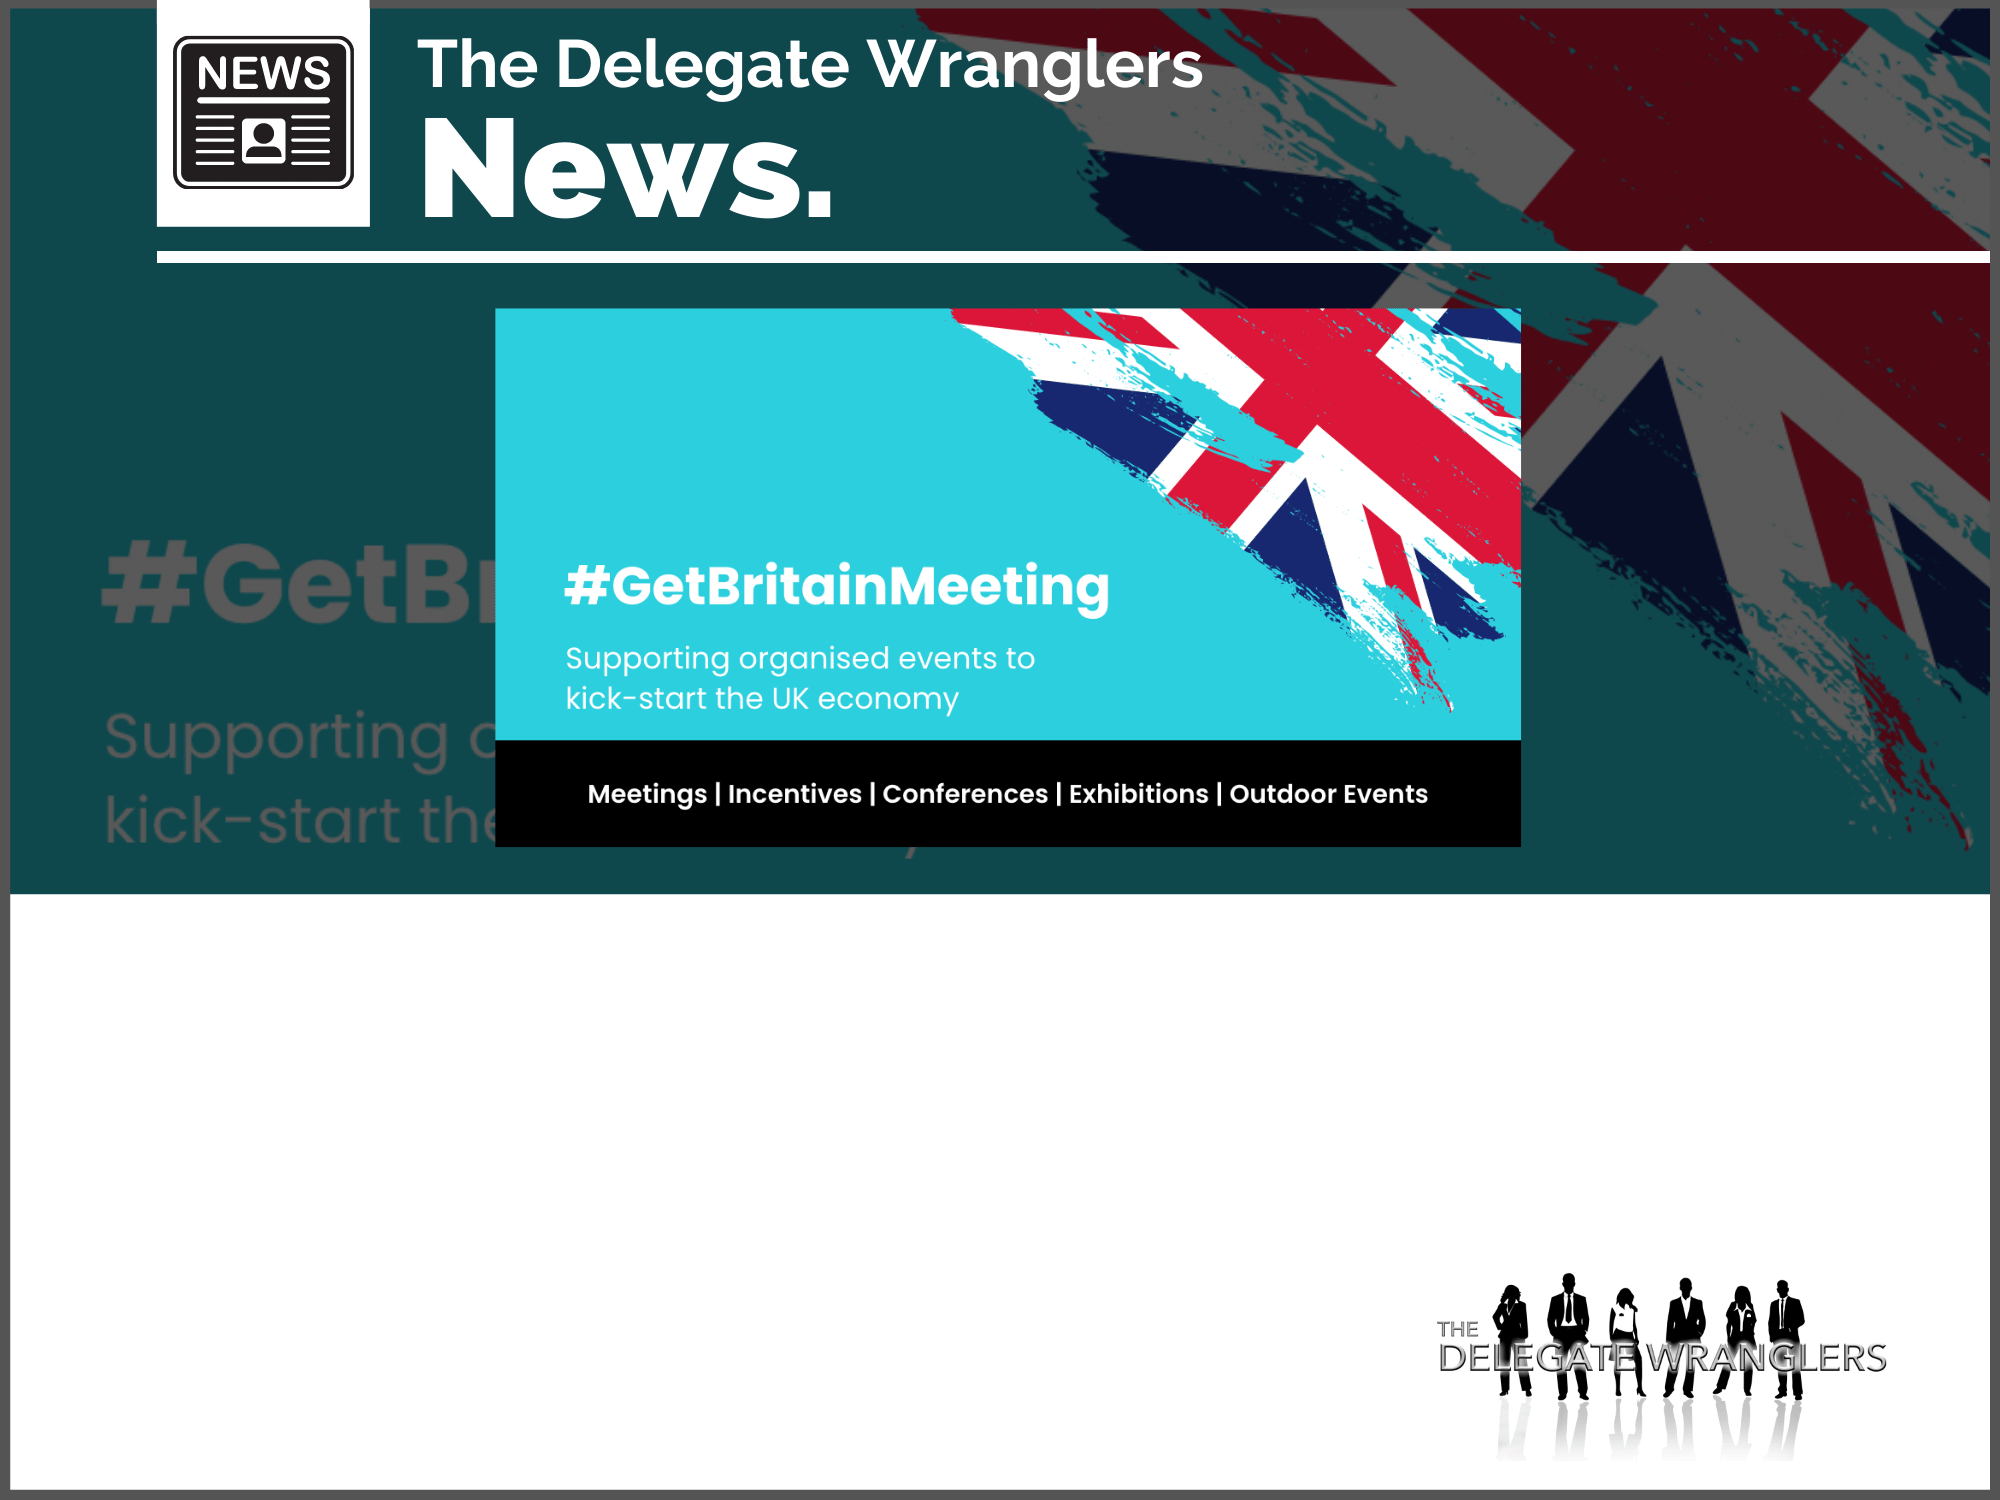 Call to action #GetBritainMeeting